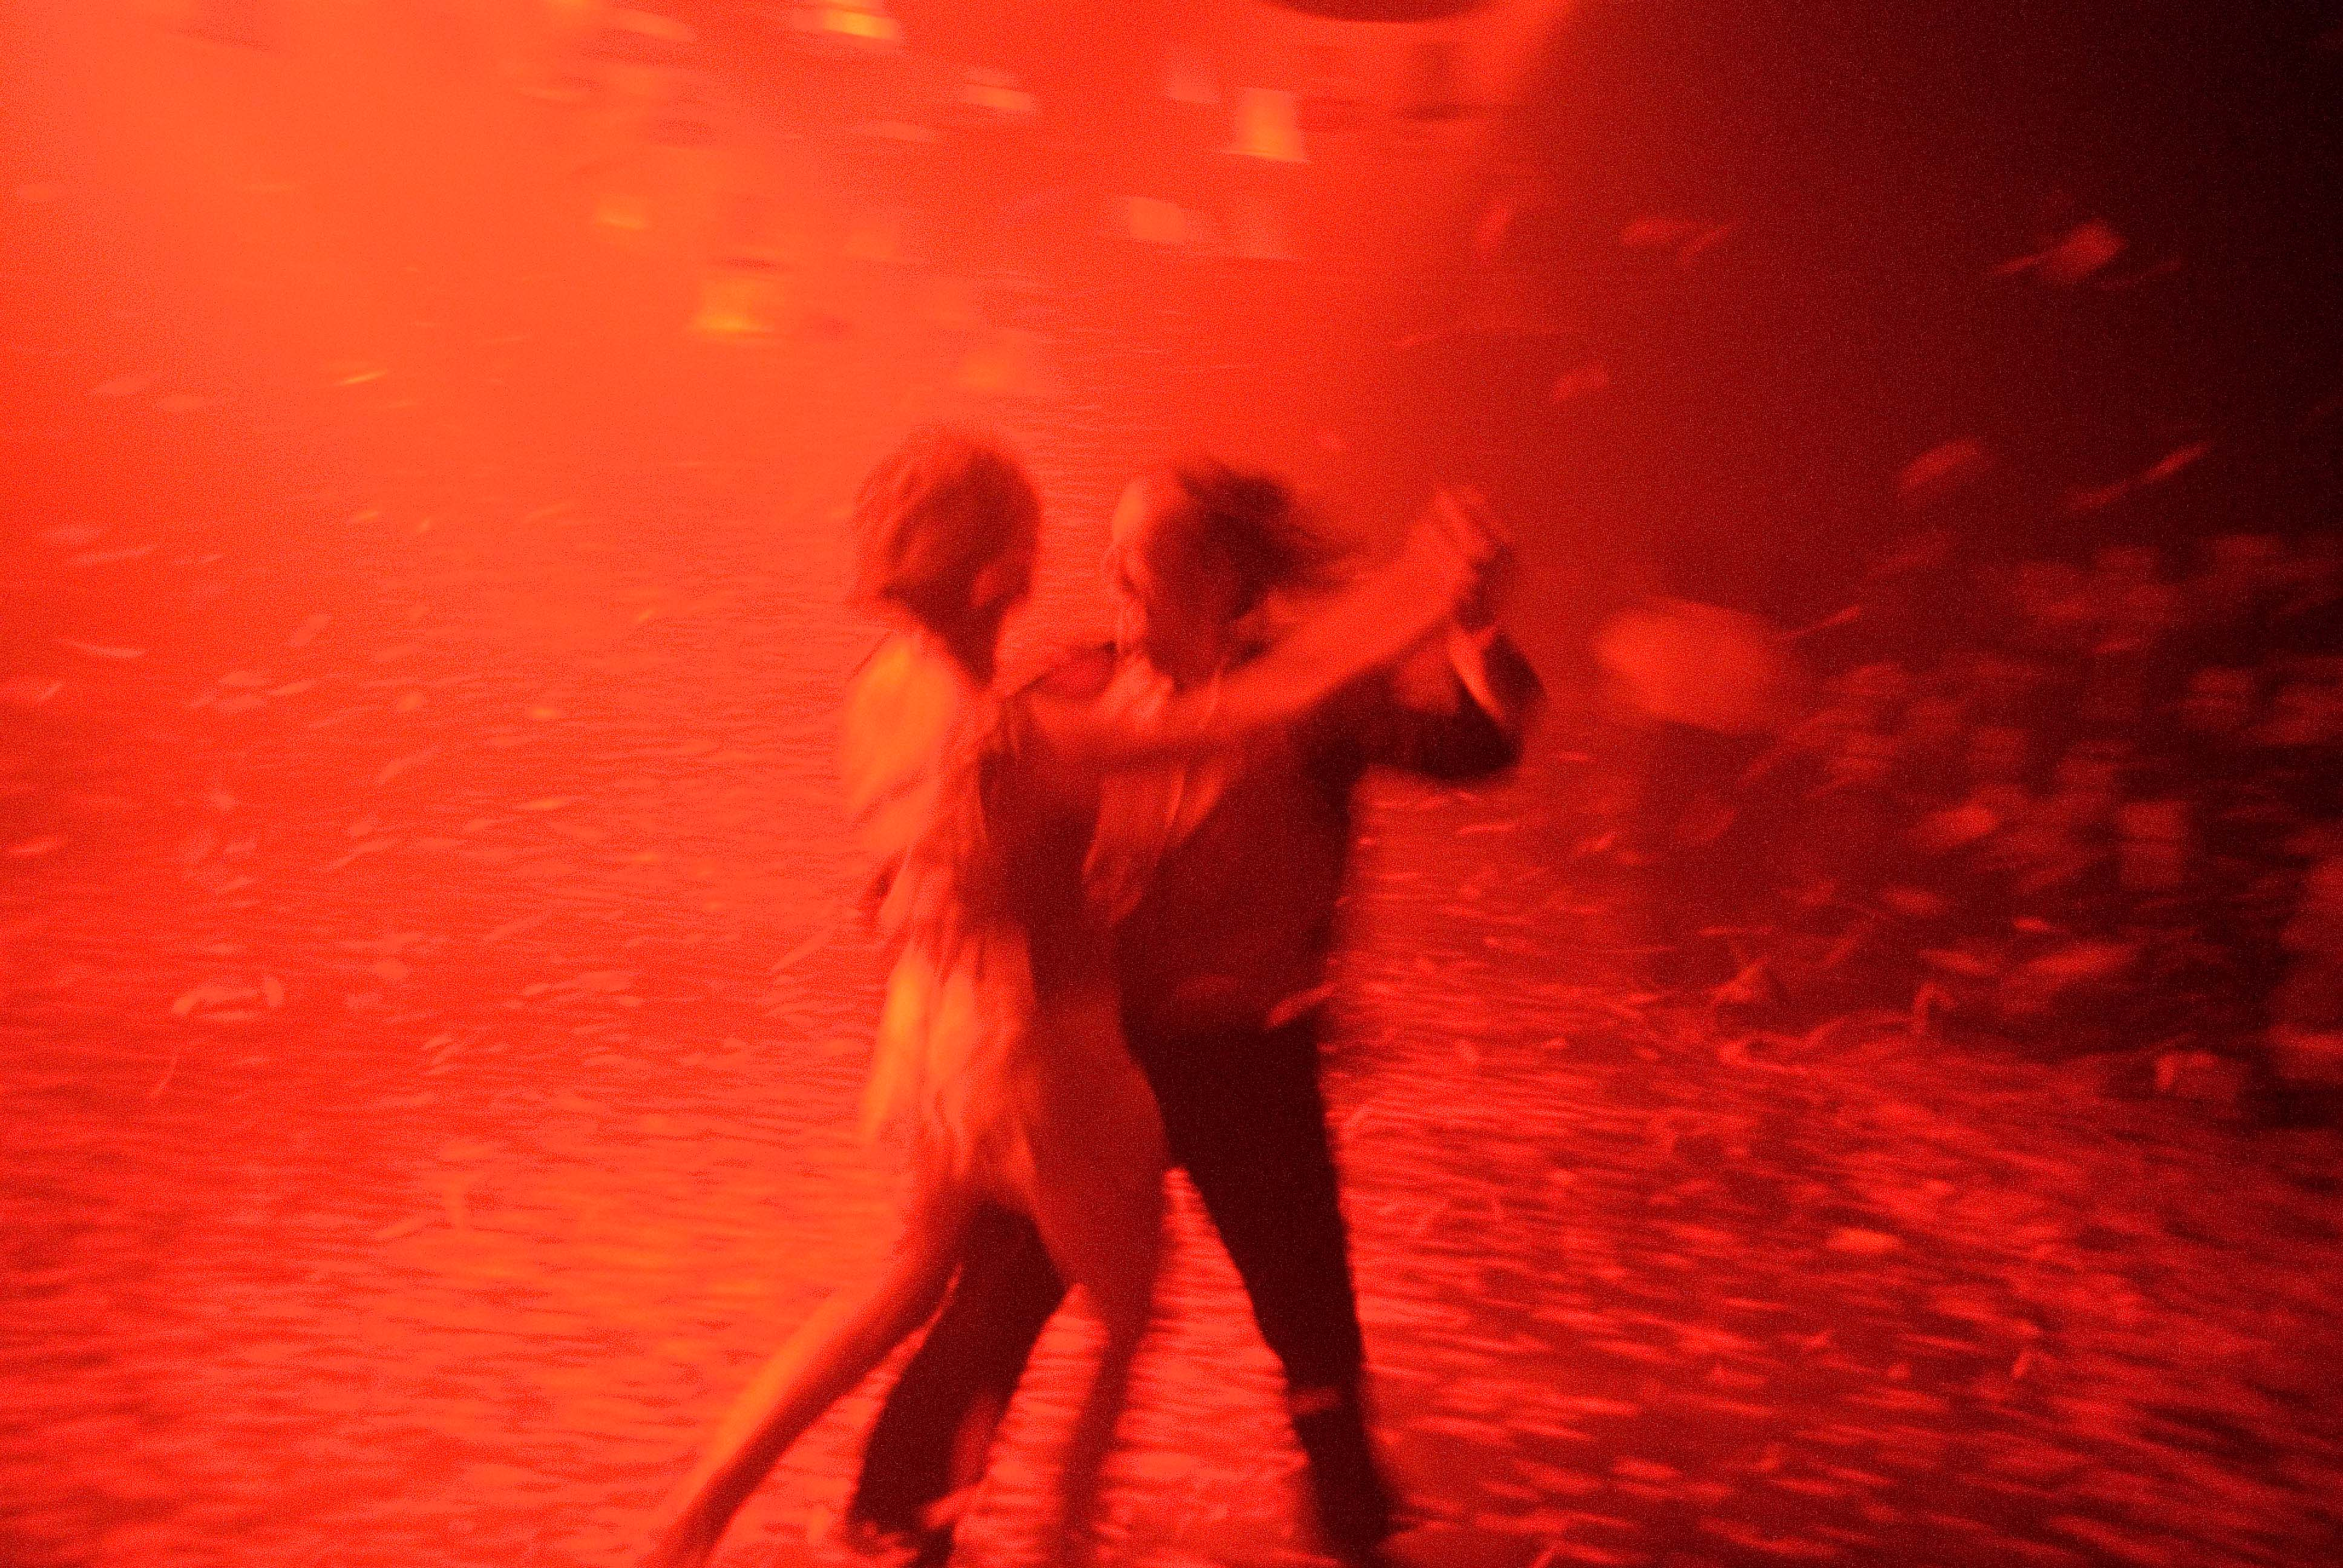 Two blurred figure dancing with each other in red lit room